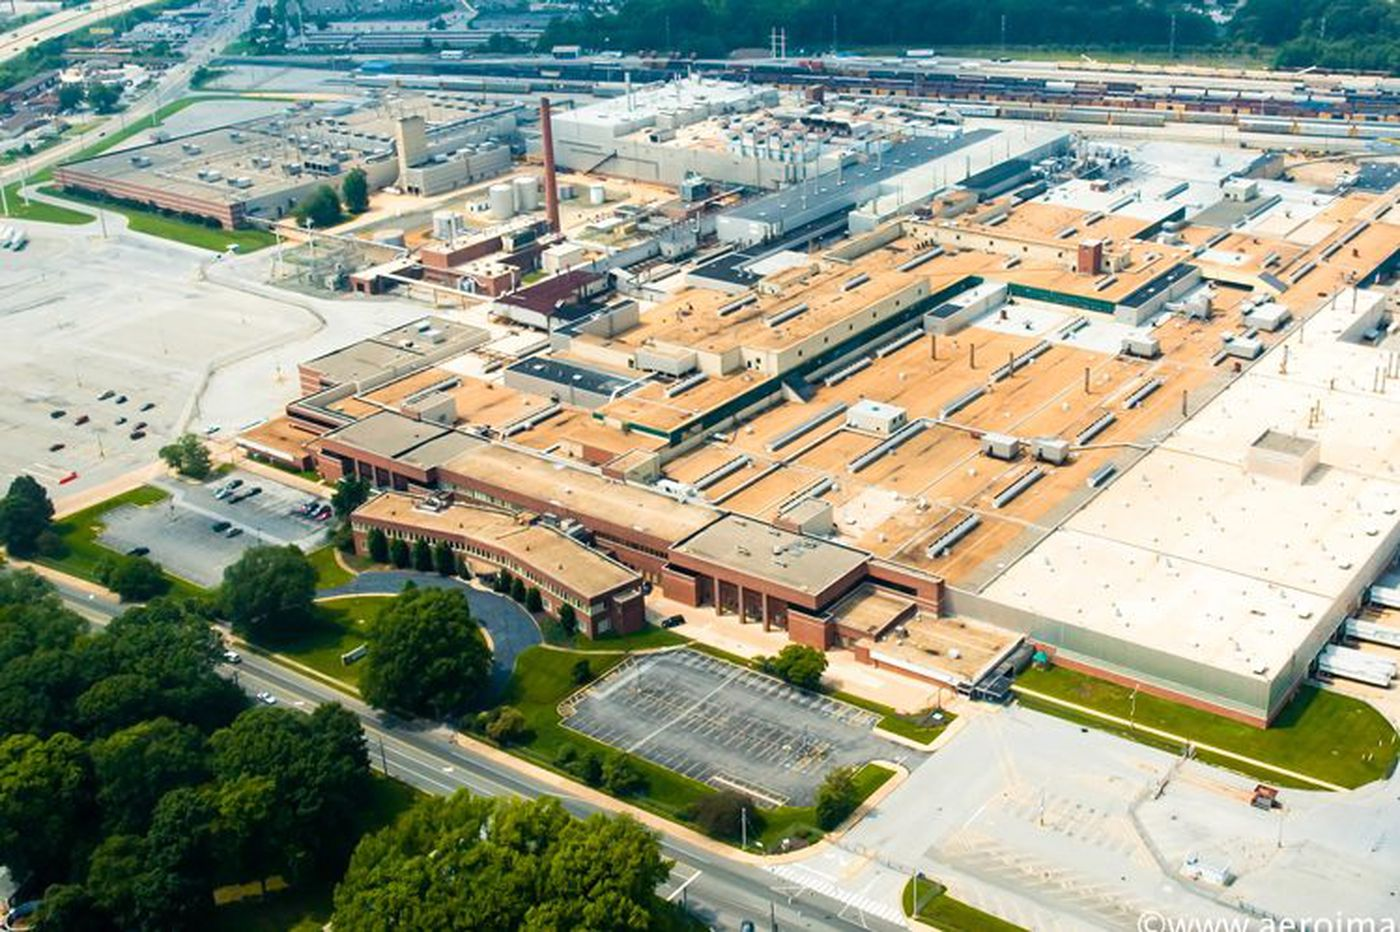 Where steel and autos were made, builders plan warehouses for digital America